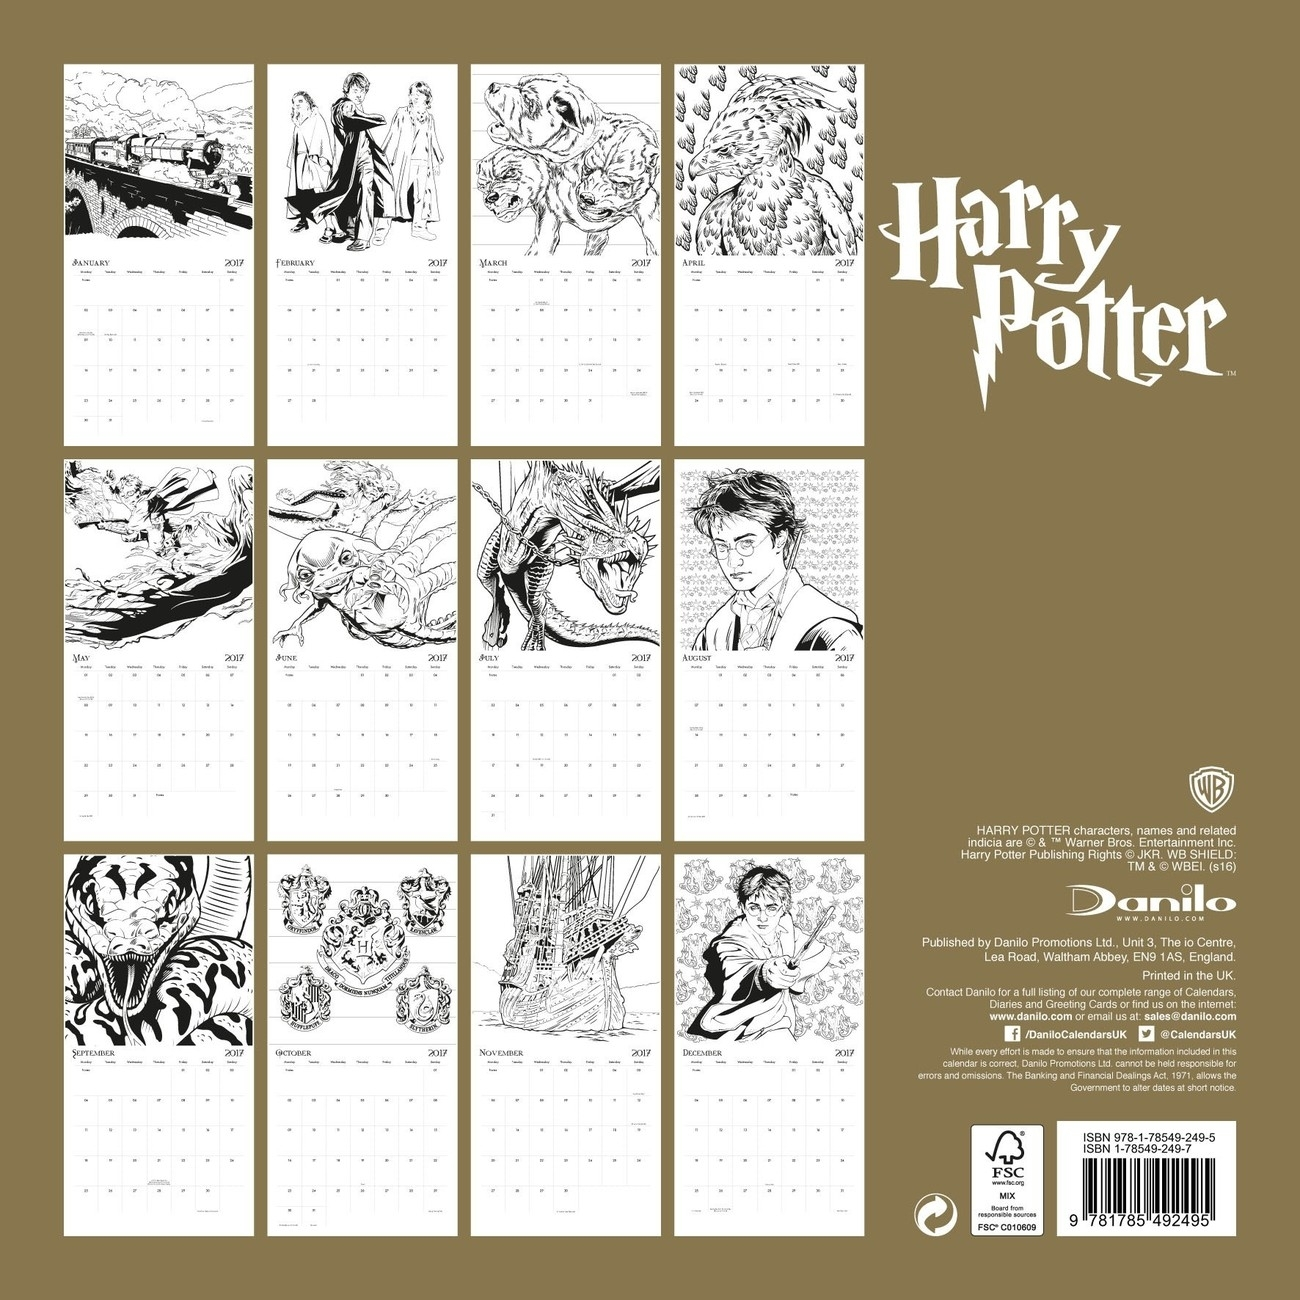 Harry Potter - Calendars 2021 On Ukposters/Europosters